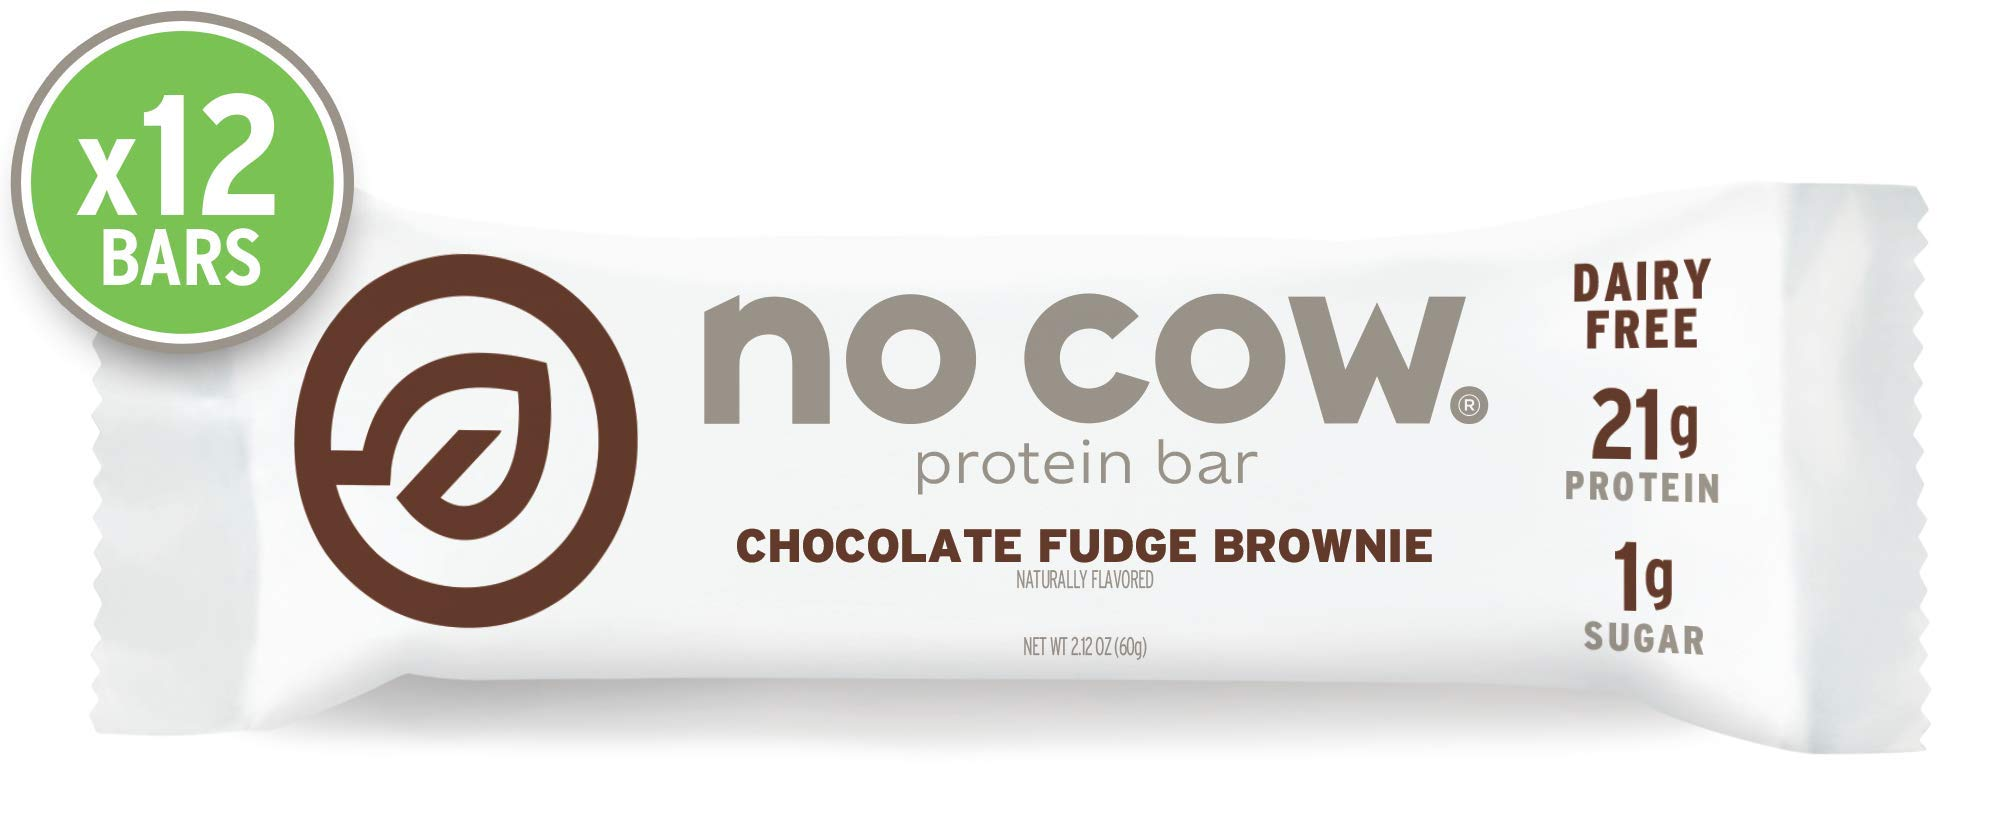 No Cow Protein Bar, Chocolate Fudge Brownie, 21g Plant Based Protein, Keto Friendly, Low Sugar, Dairy Free, Gluten Free, Vegan, High Fiber, Non-GMO,  12 Count by No Cow